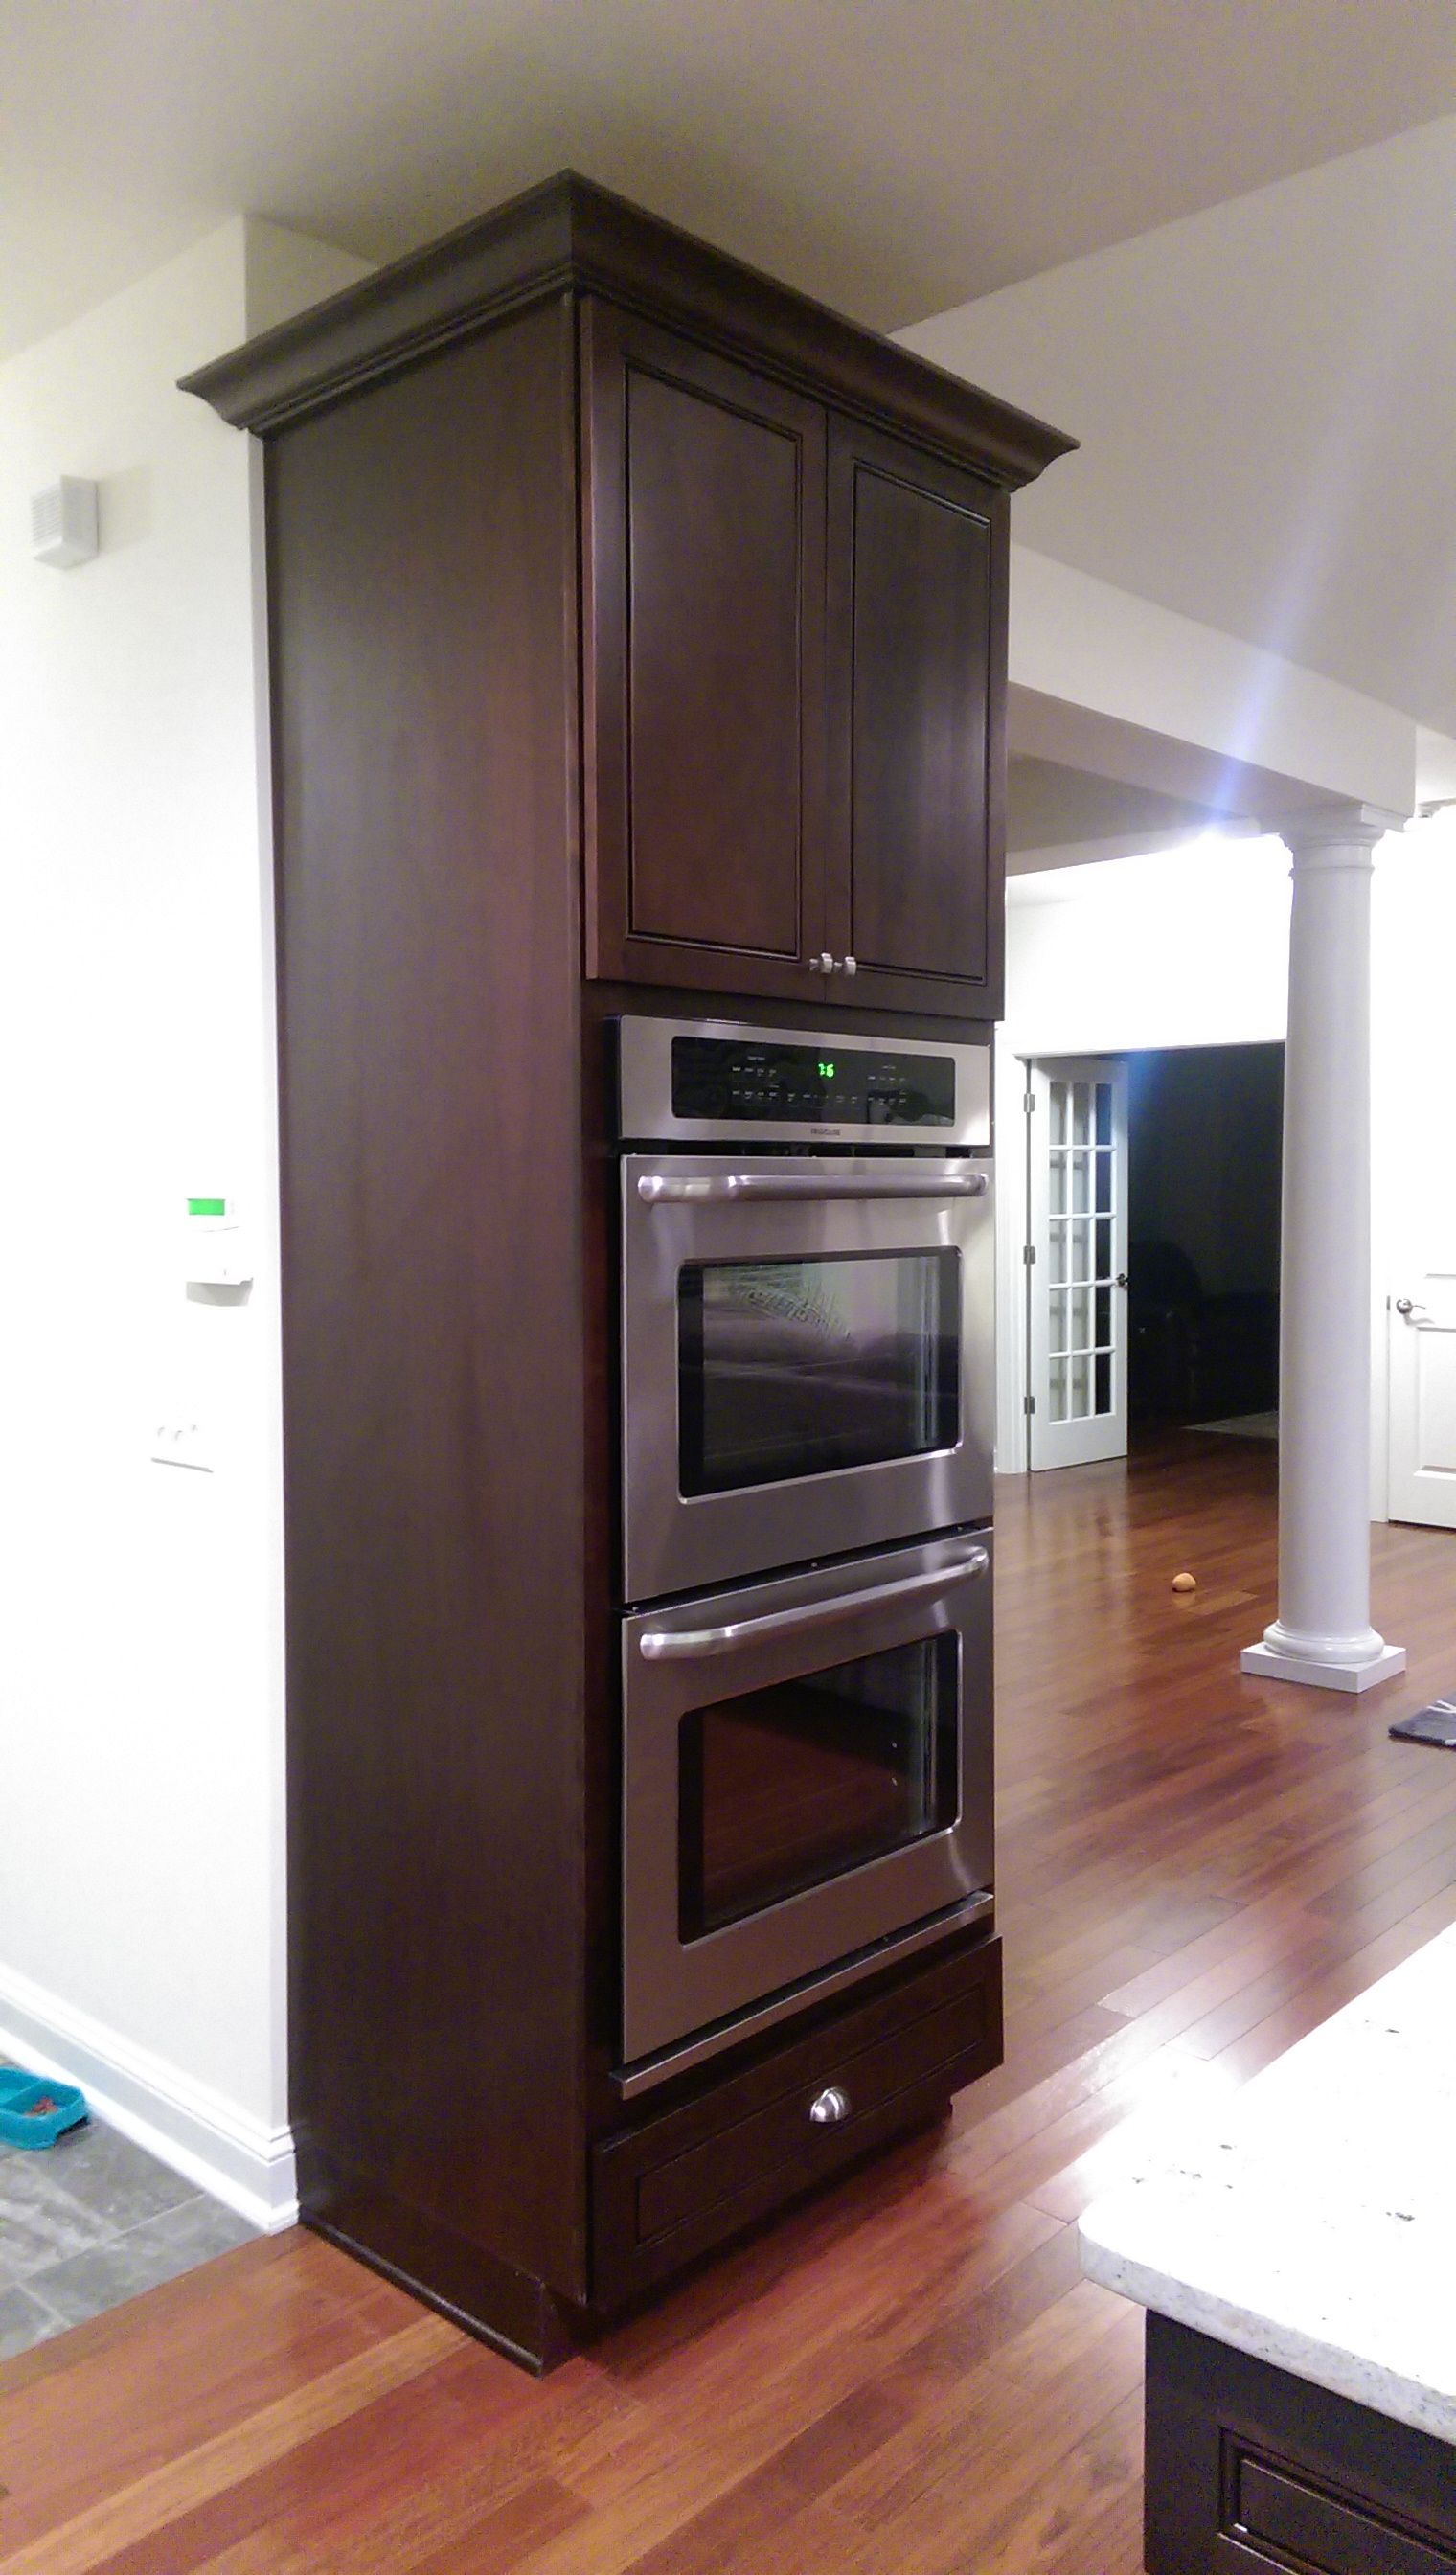 Kraftmaid Double Oven Cabinet Oven Cabinet Double Wall Oven Double Oven